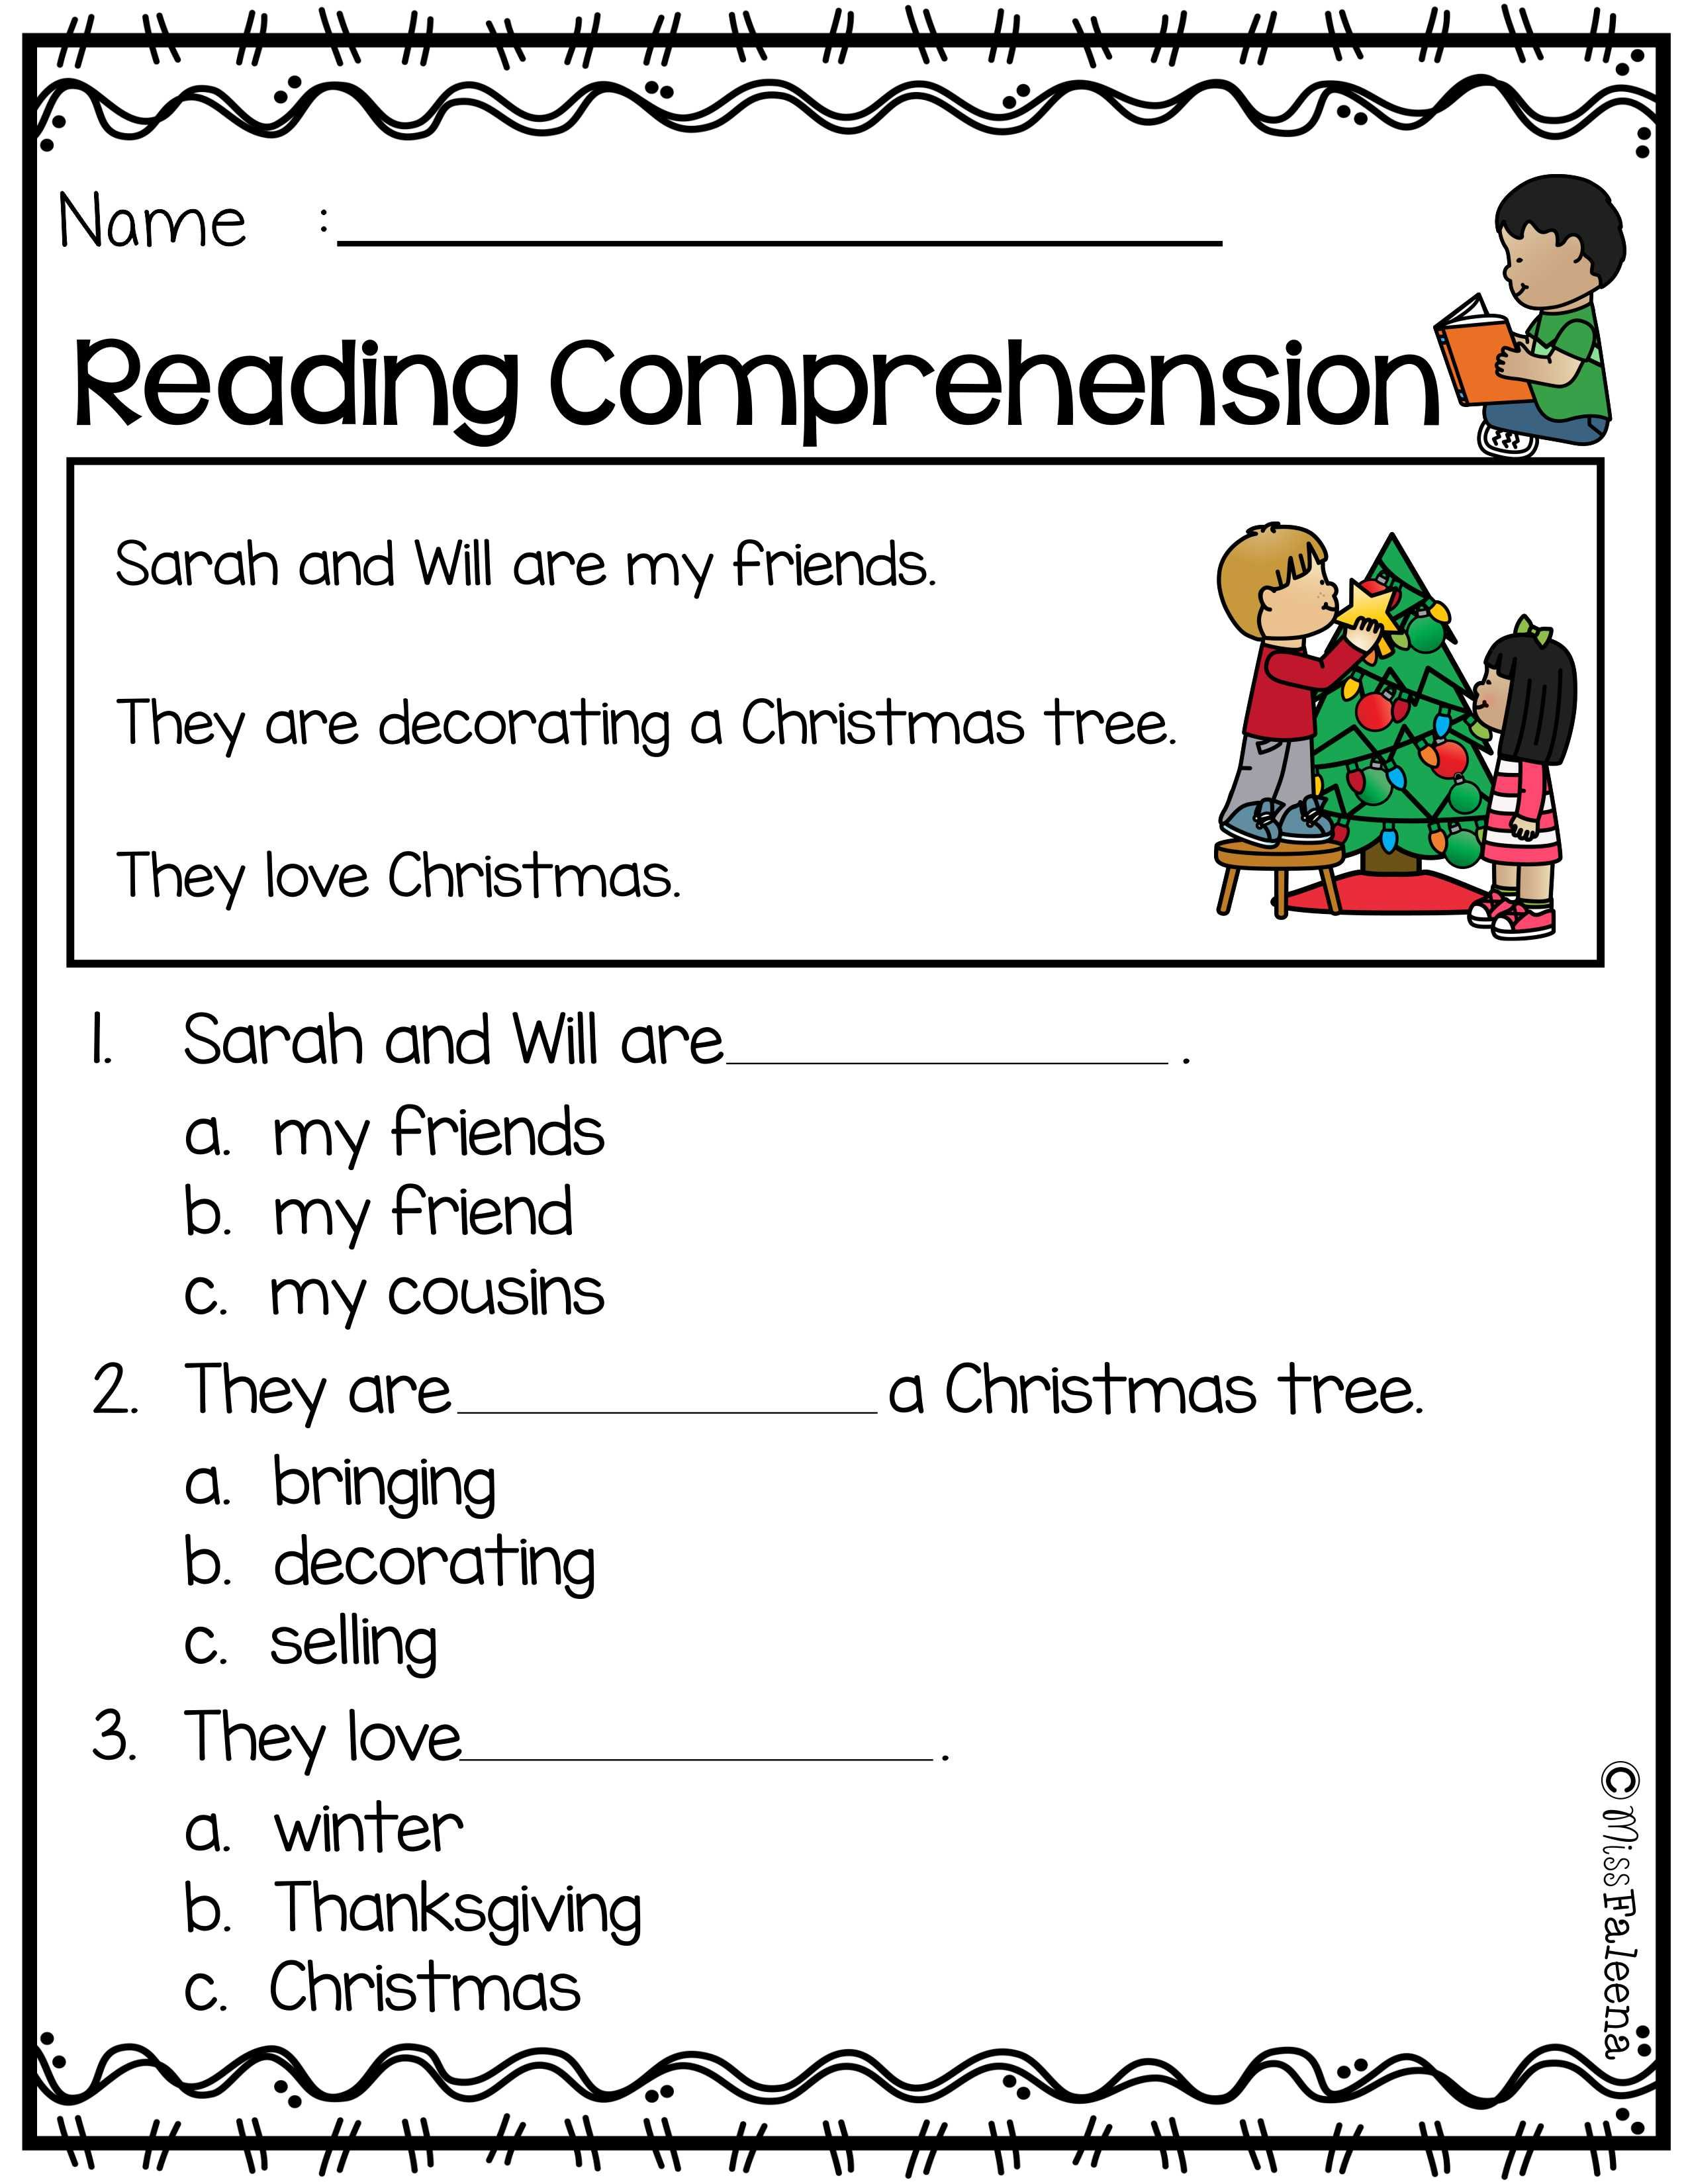 December Reading Comprehension